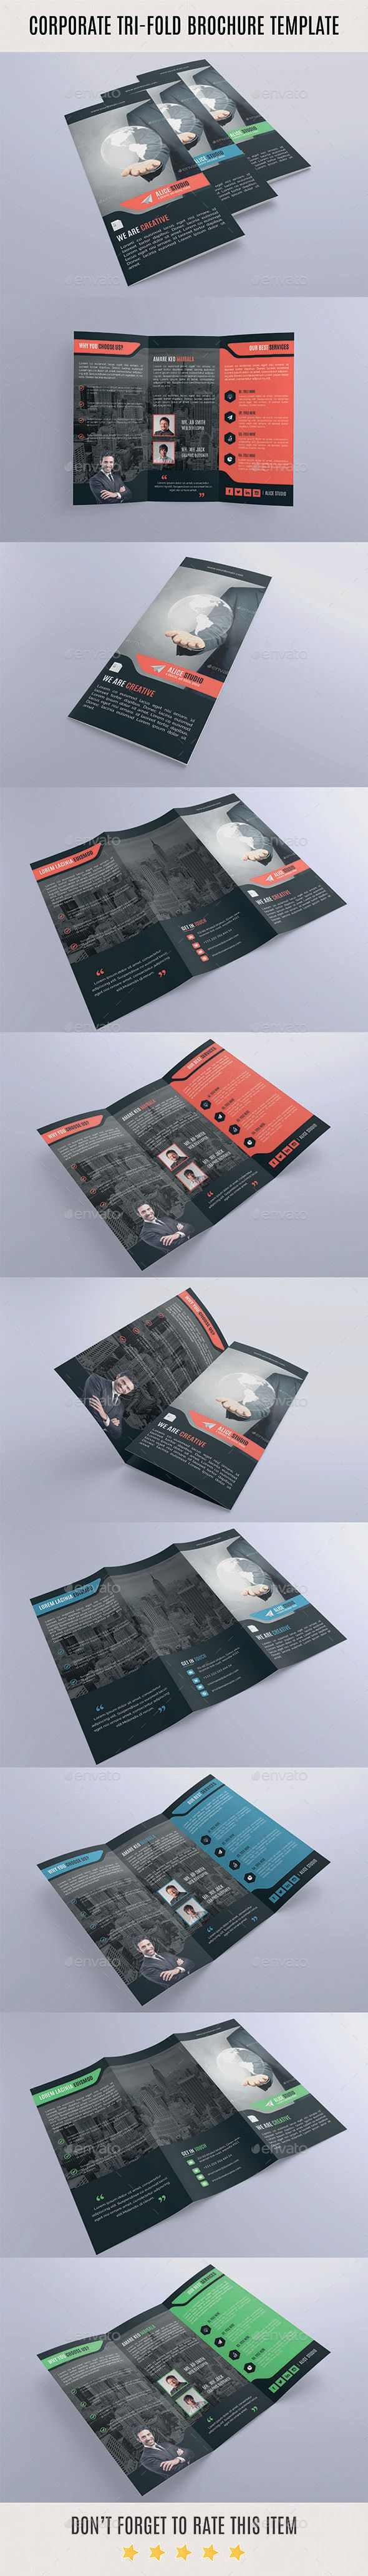 Corporate Tri-Fold Brochure Template Vector EPS, AI #design Download: http://graphicriver.net/item/corporate-trifold-brochure-template/14165362?ref=ksioks